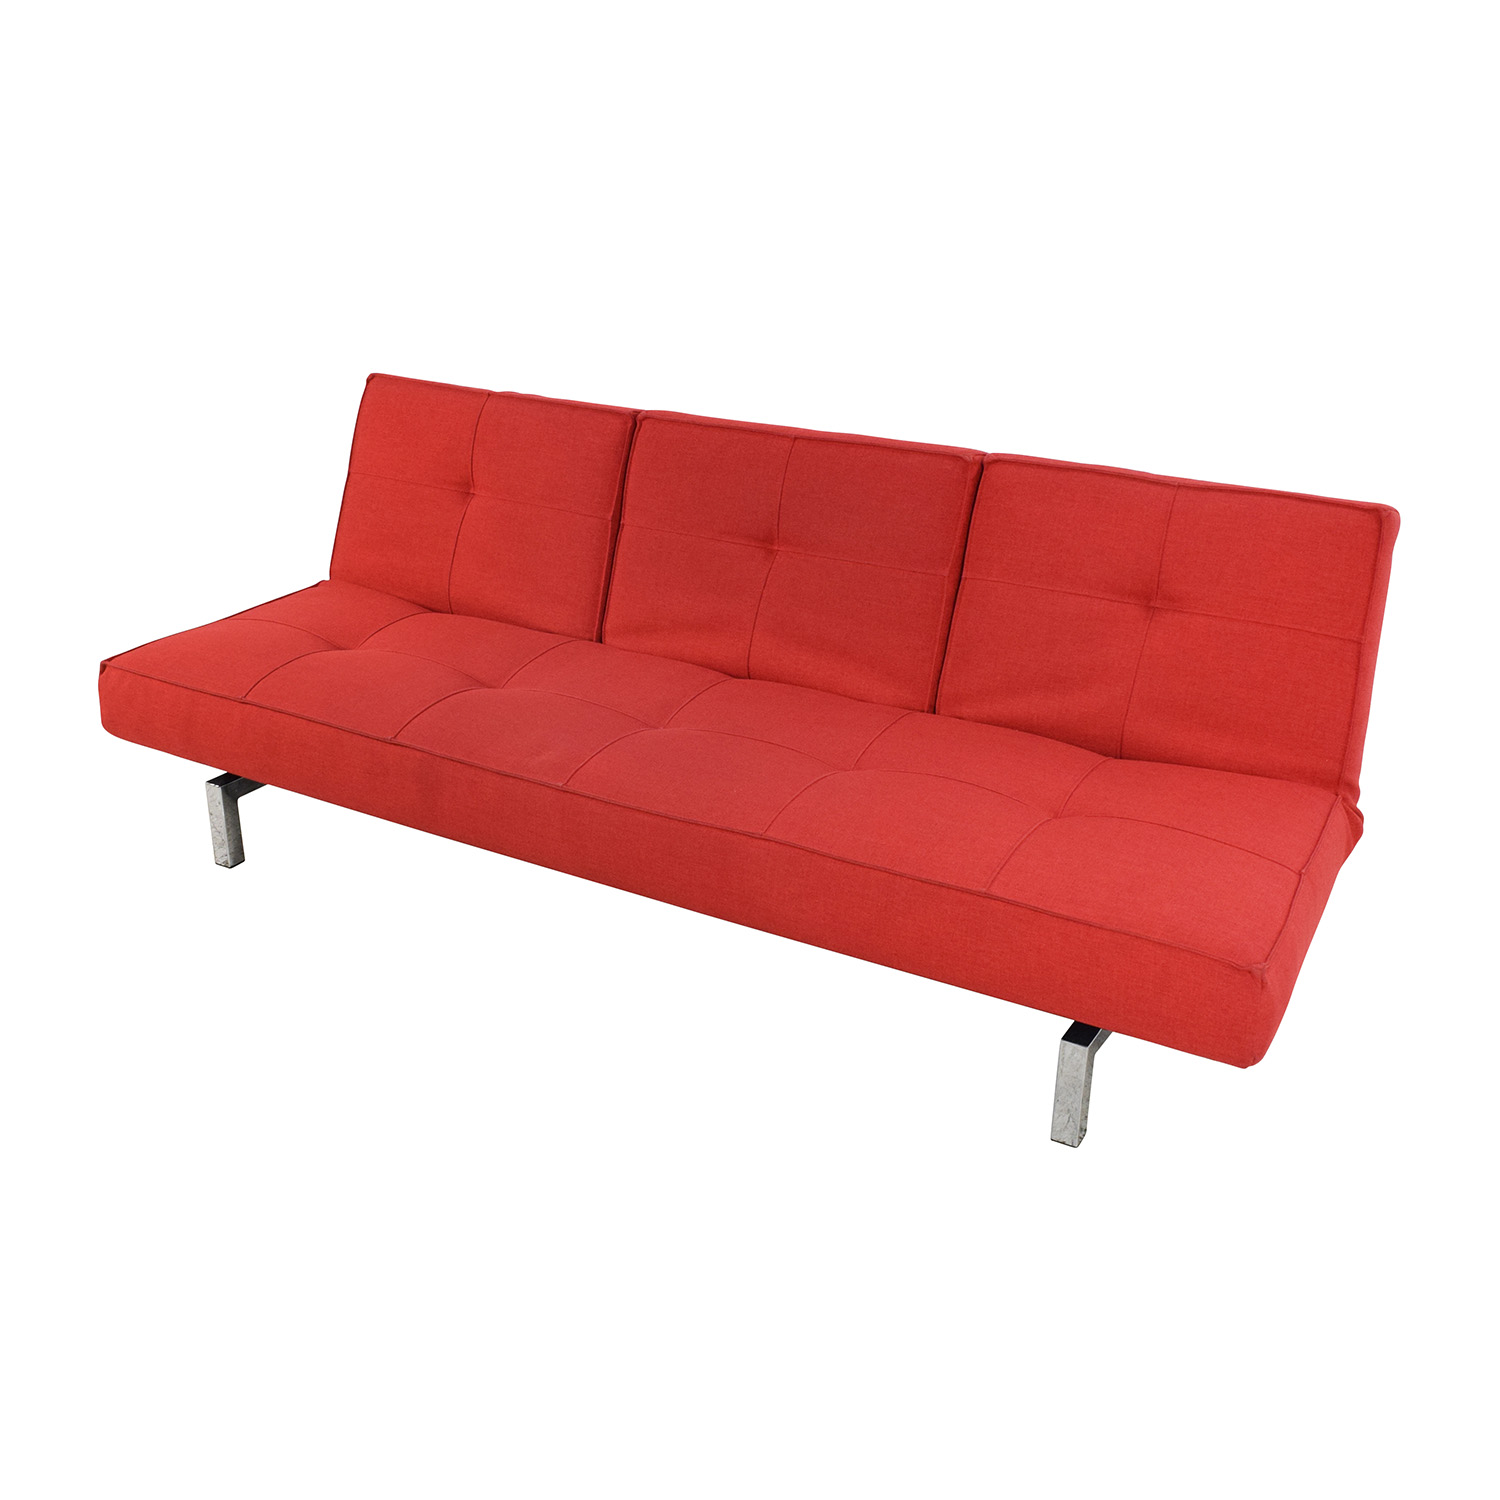 Red Sofa 51 Off Room And Board Room And Board Eden Convertible Red